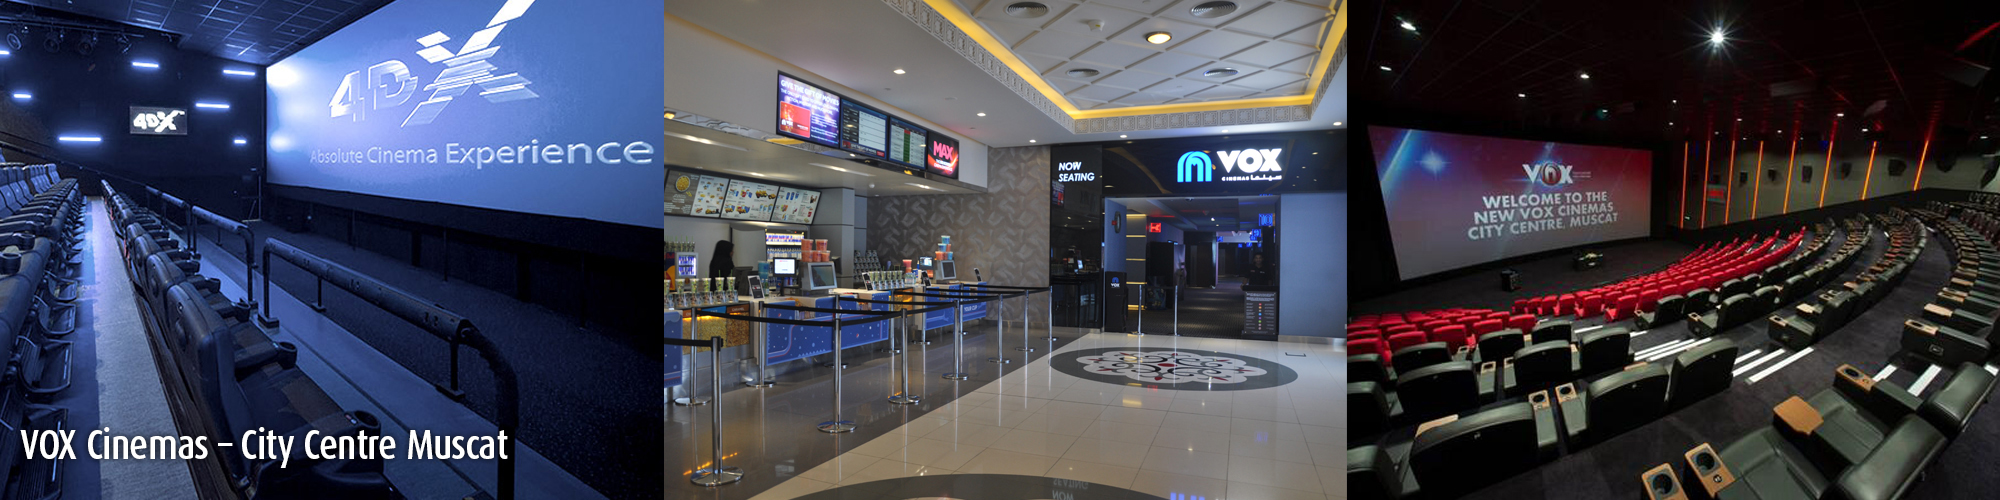 VOX Cinemas - City Centre Muscat